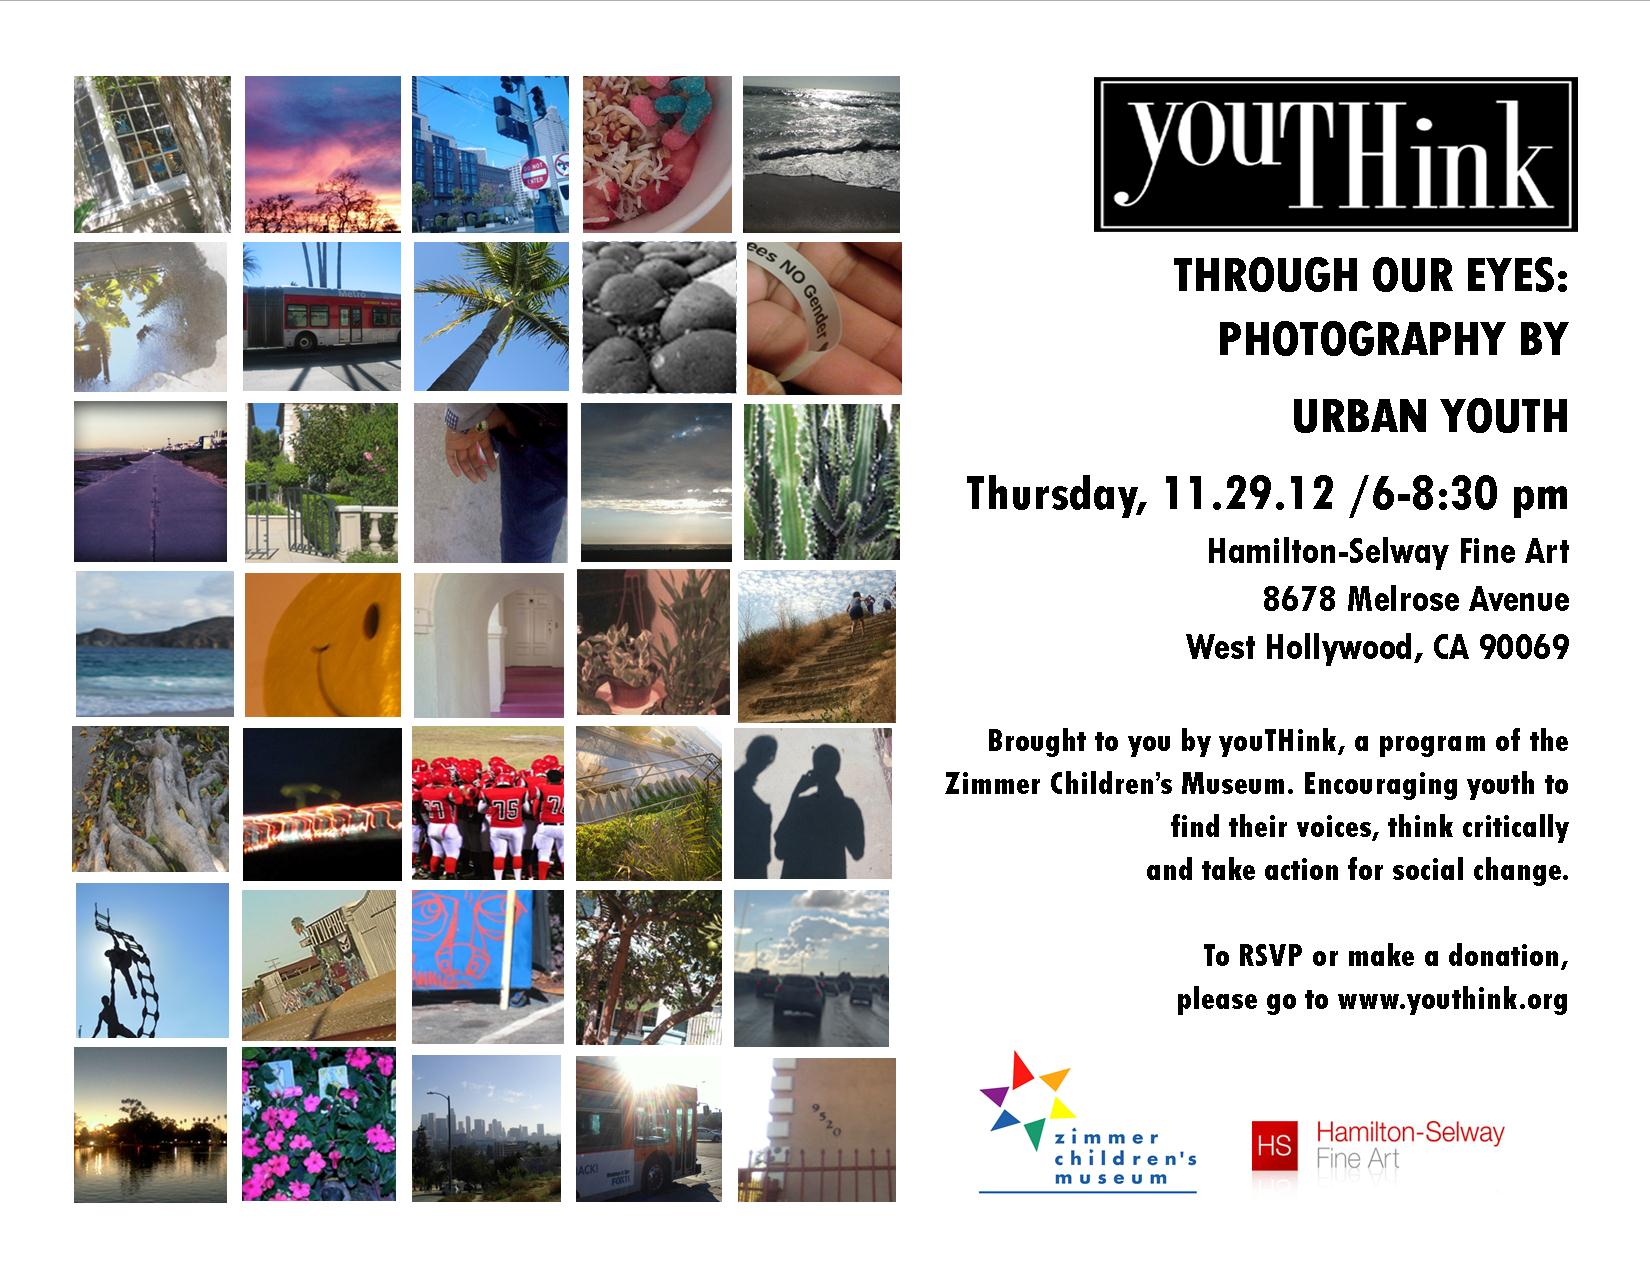 youthink Through Our Eyes 2012 invitation